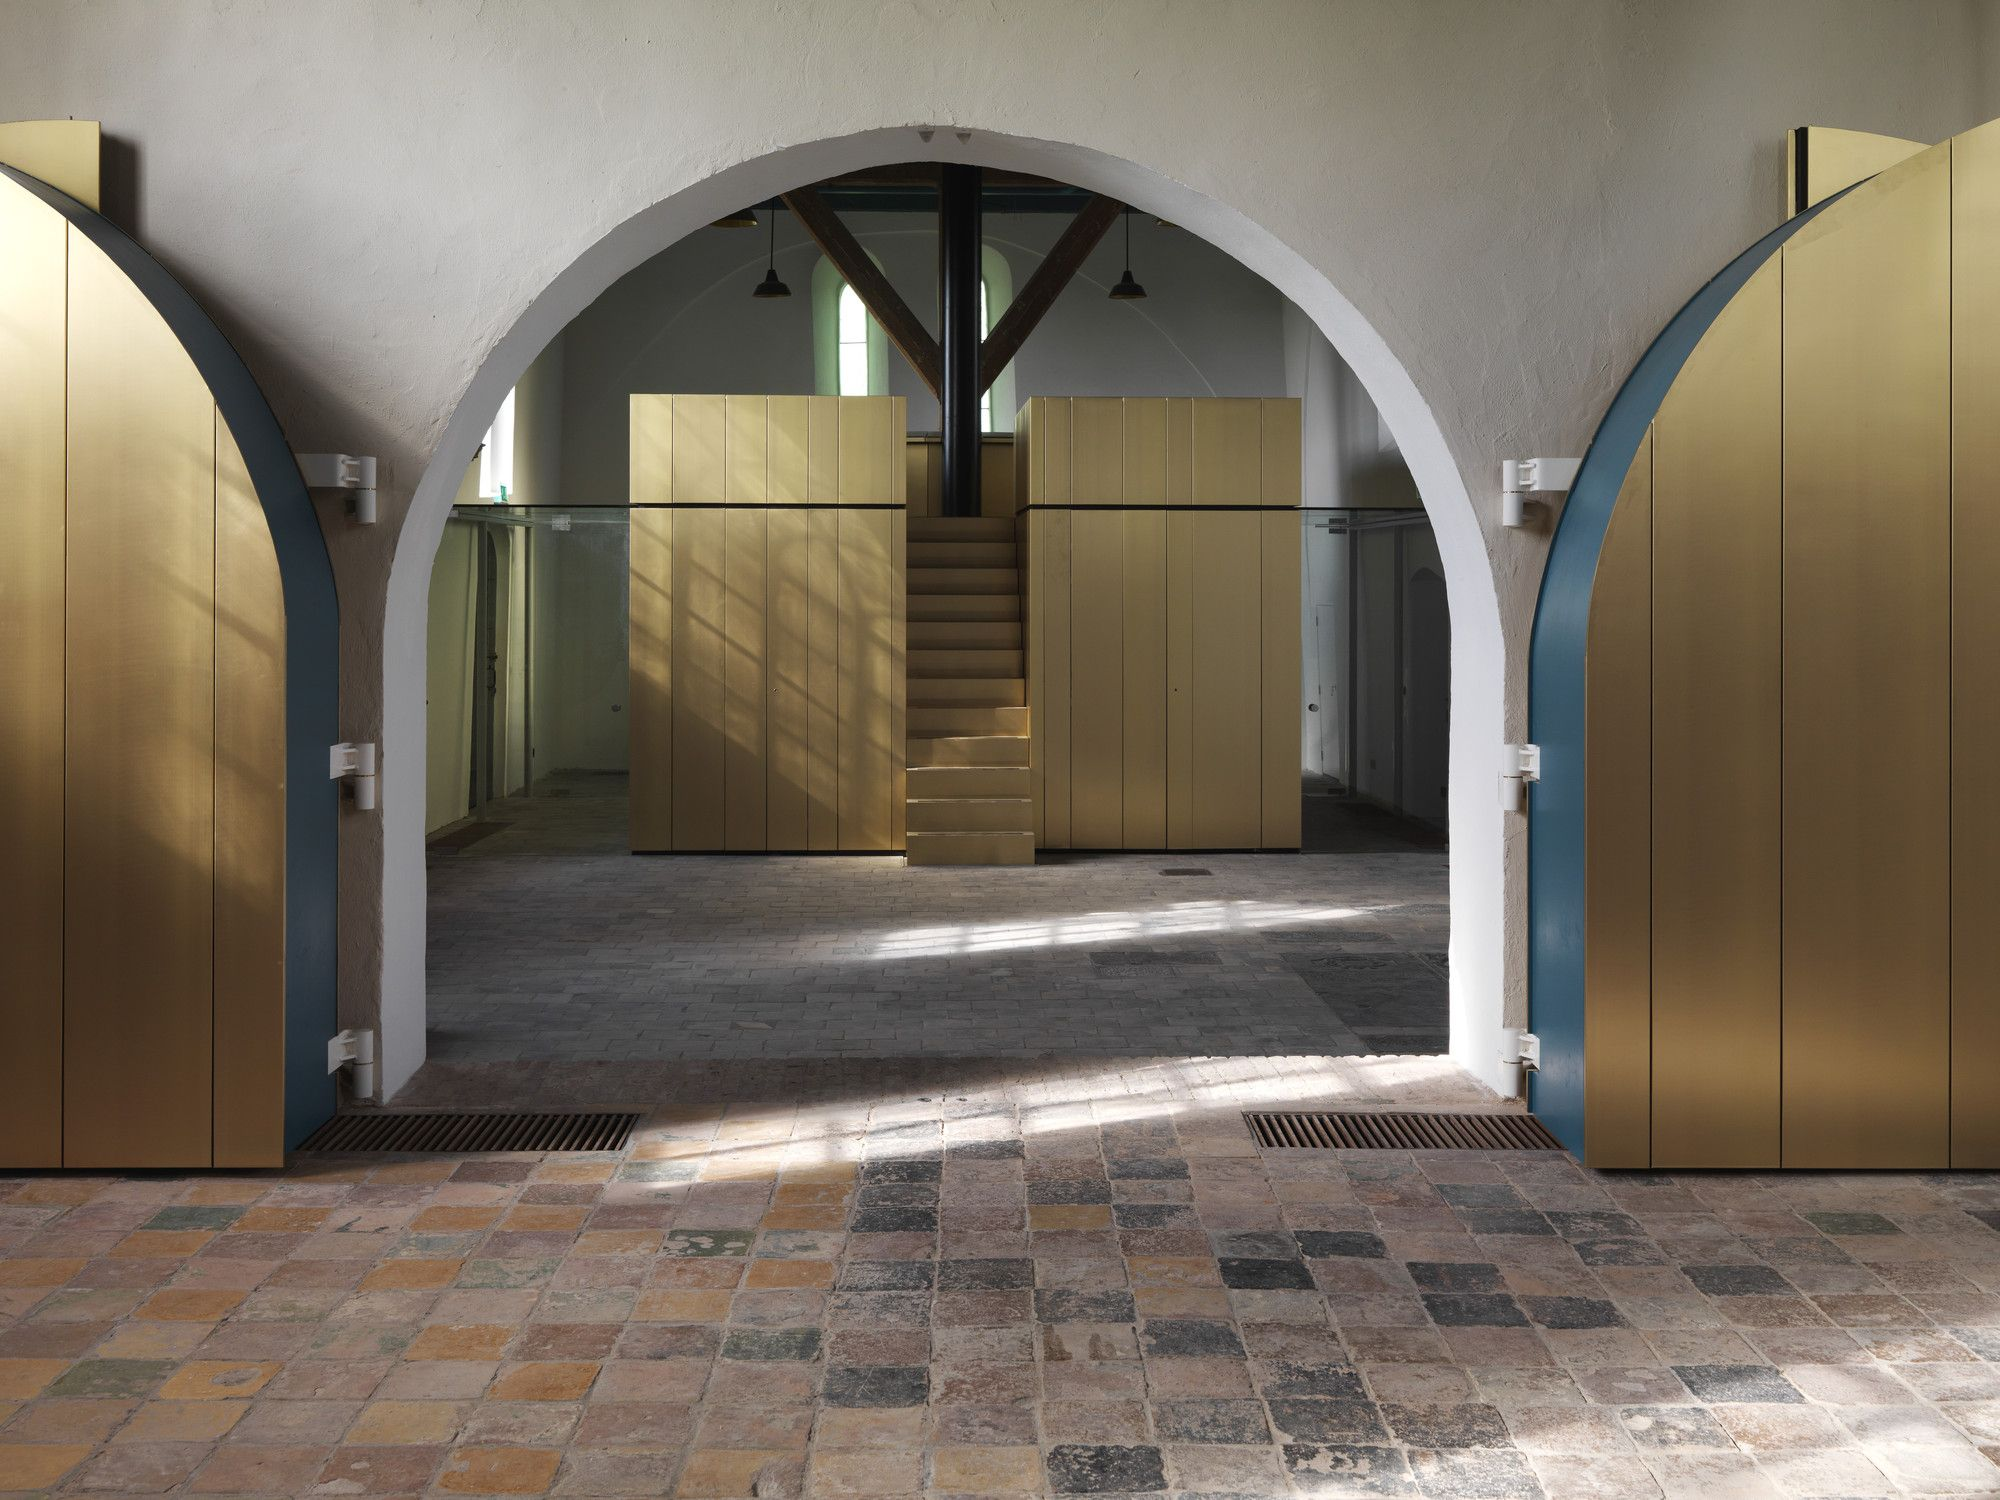 Gallery of Leegkerk Church Interior Renovation / awg architects - 1